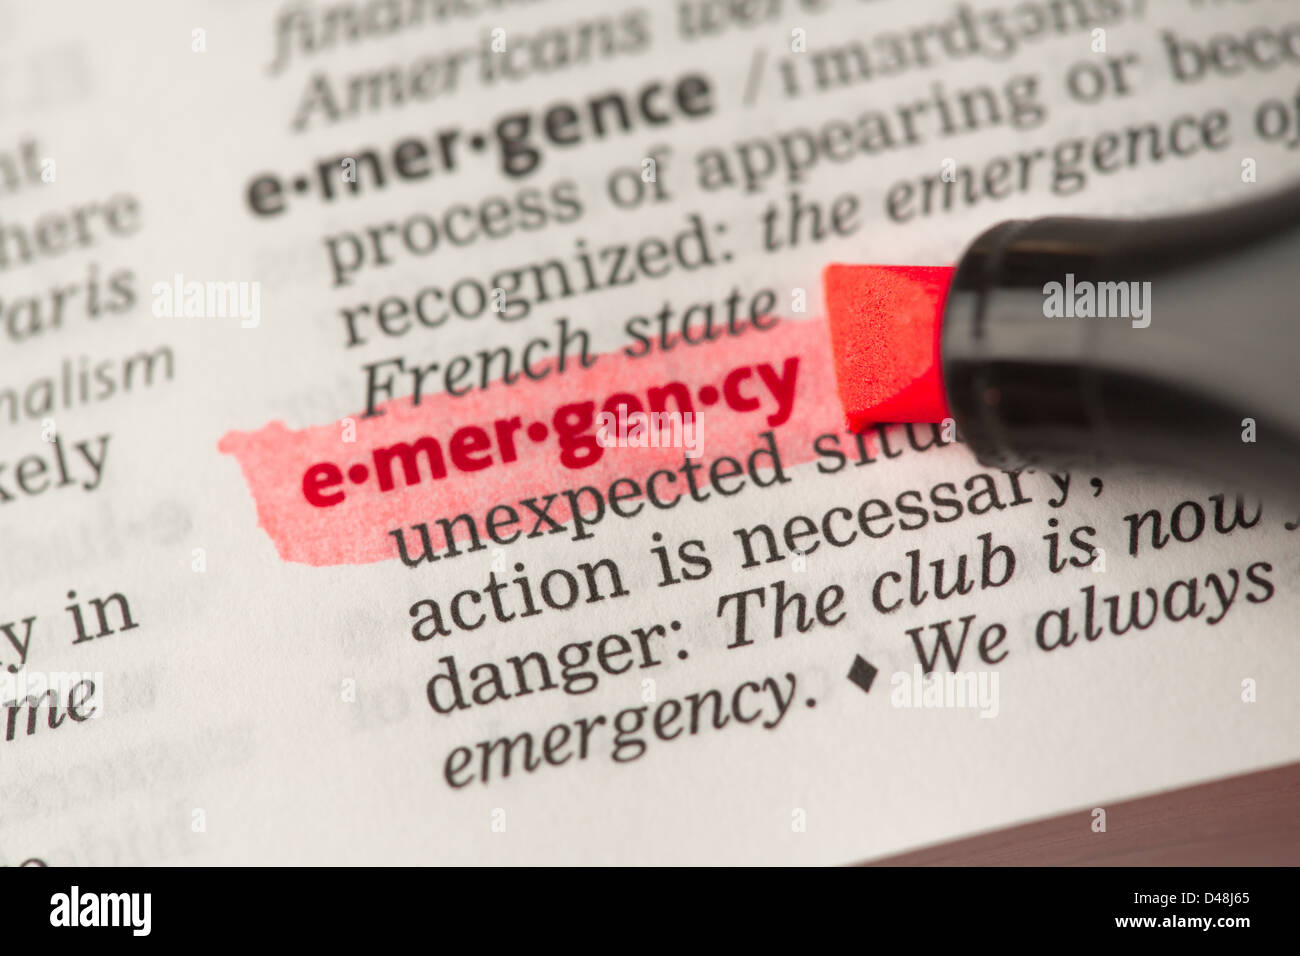 Emergency definition highlighted in red - Stock Image